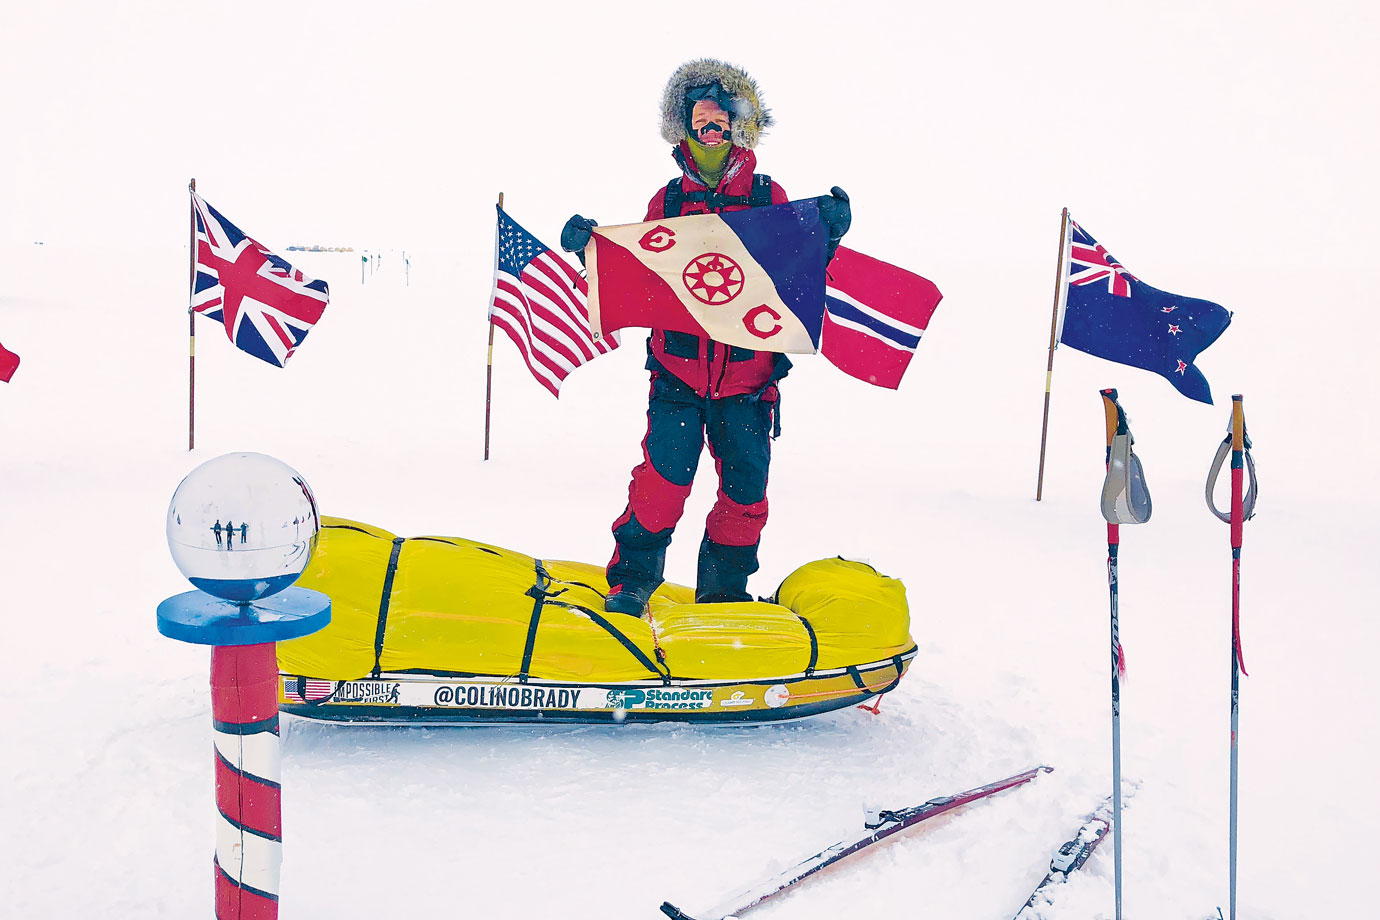 O'Brady celebrating at the South Pole.